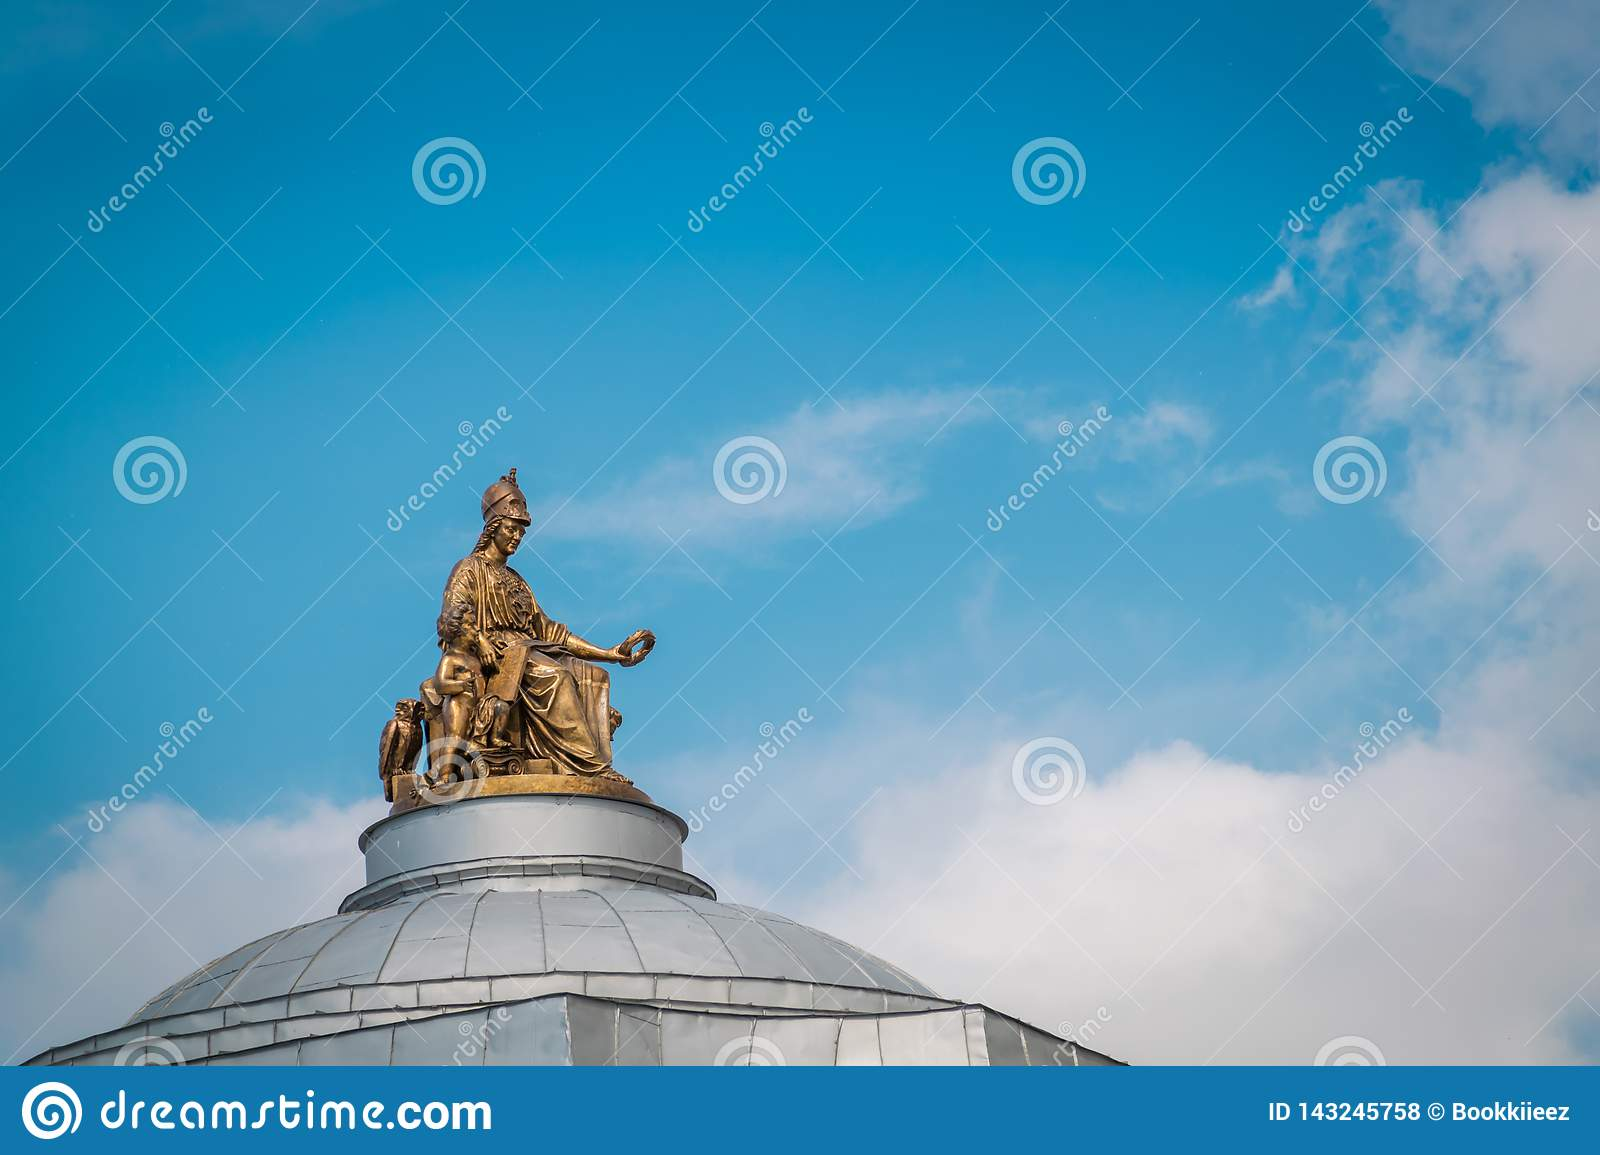 The golden statue on roof top of Imperial Academy of Arts building in Saint Petersburg, Russia.